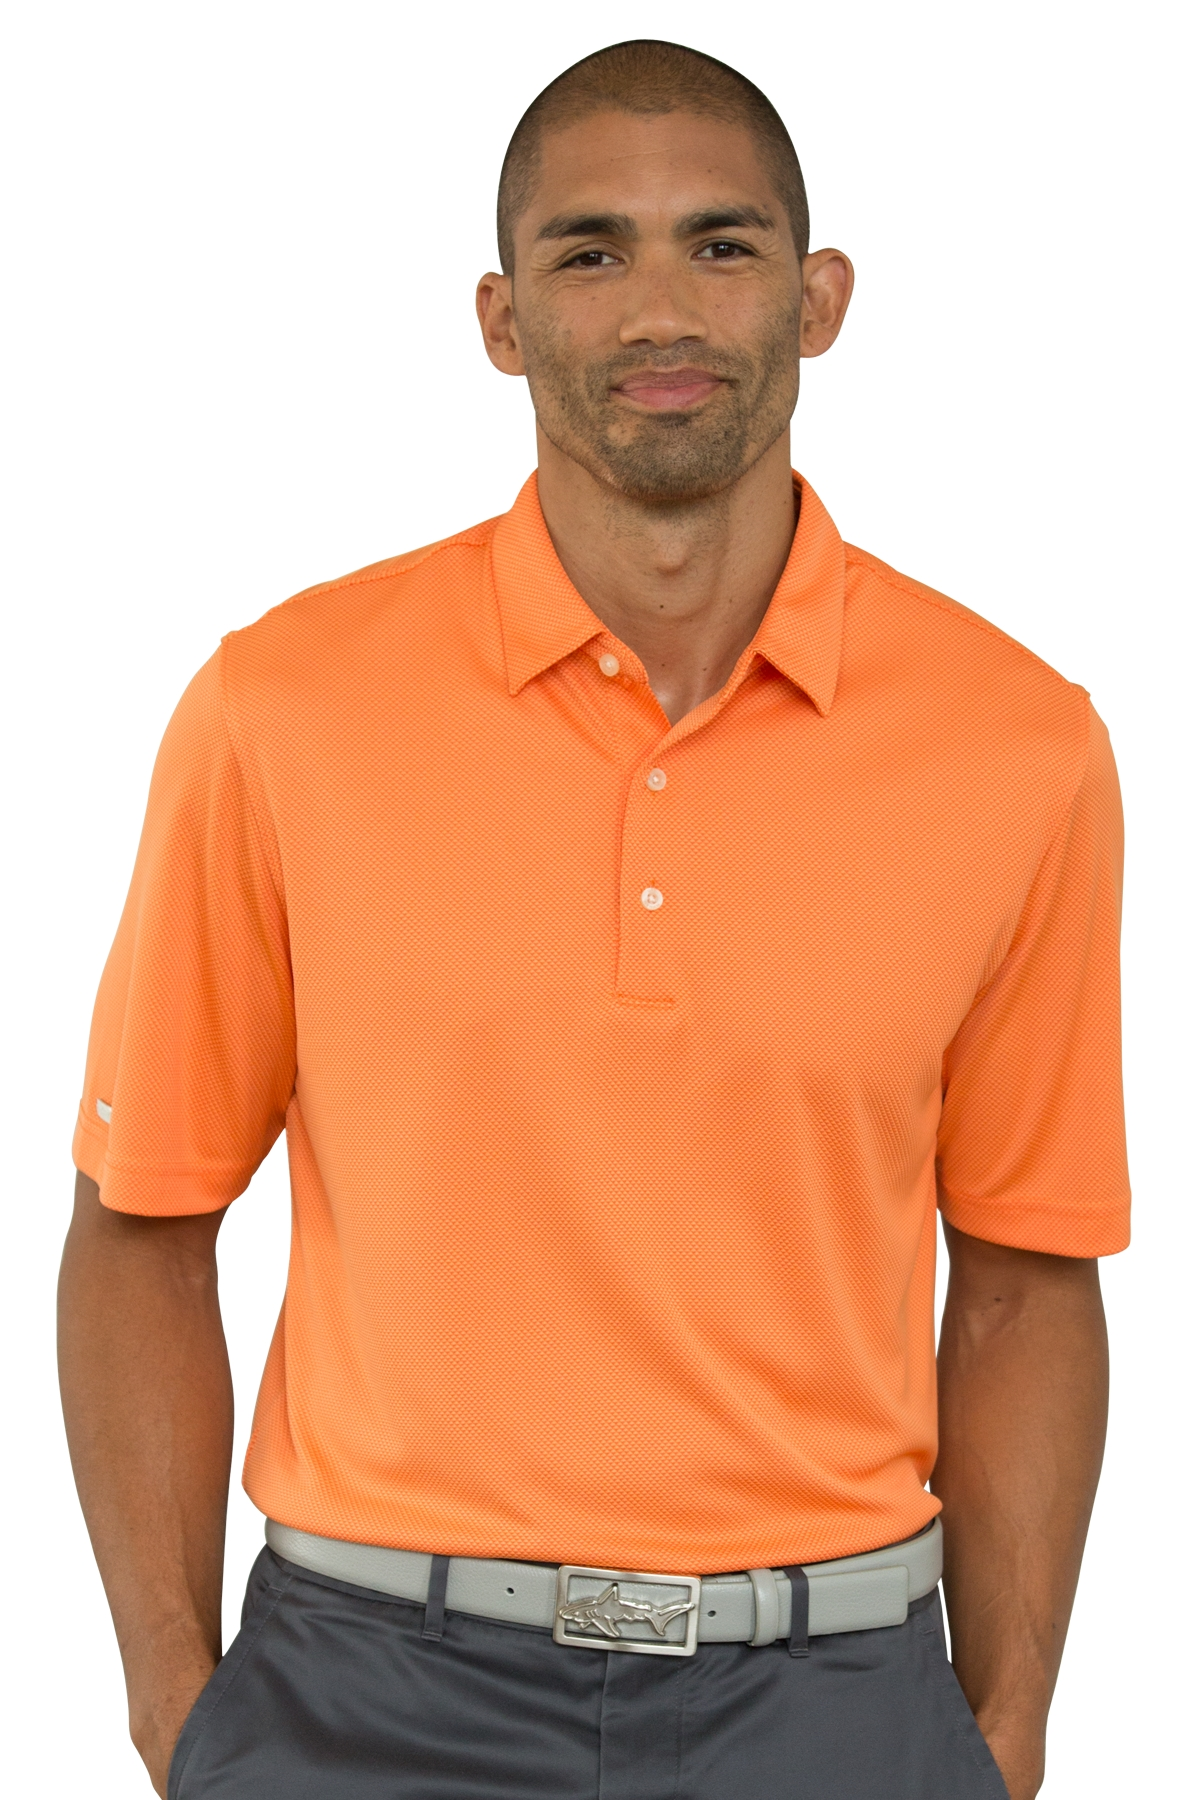 Greg Norman GNS7K432 - Men's Play Dry Jacquard Polo